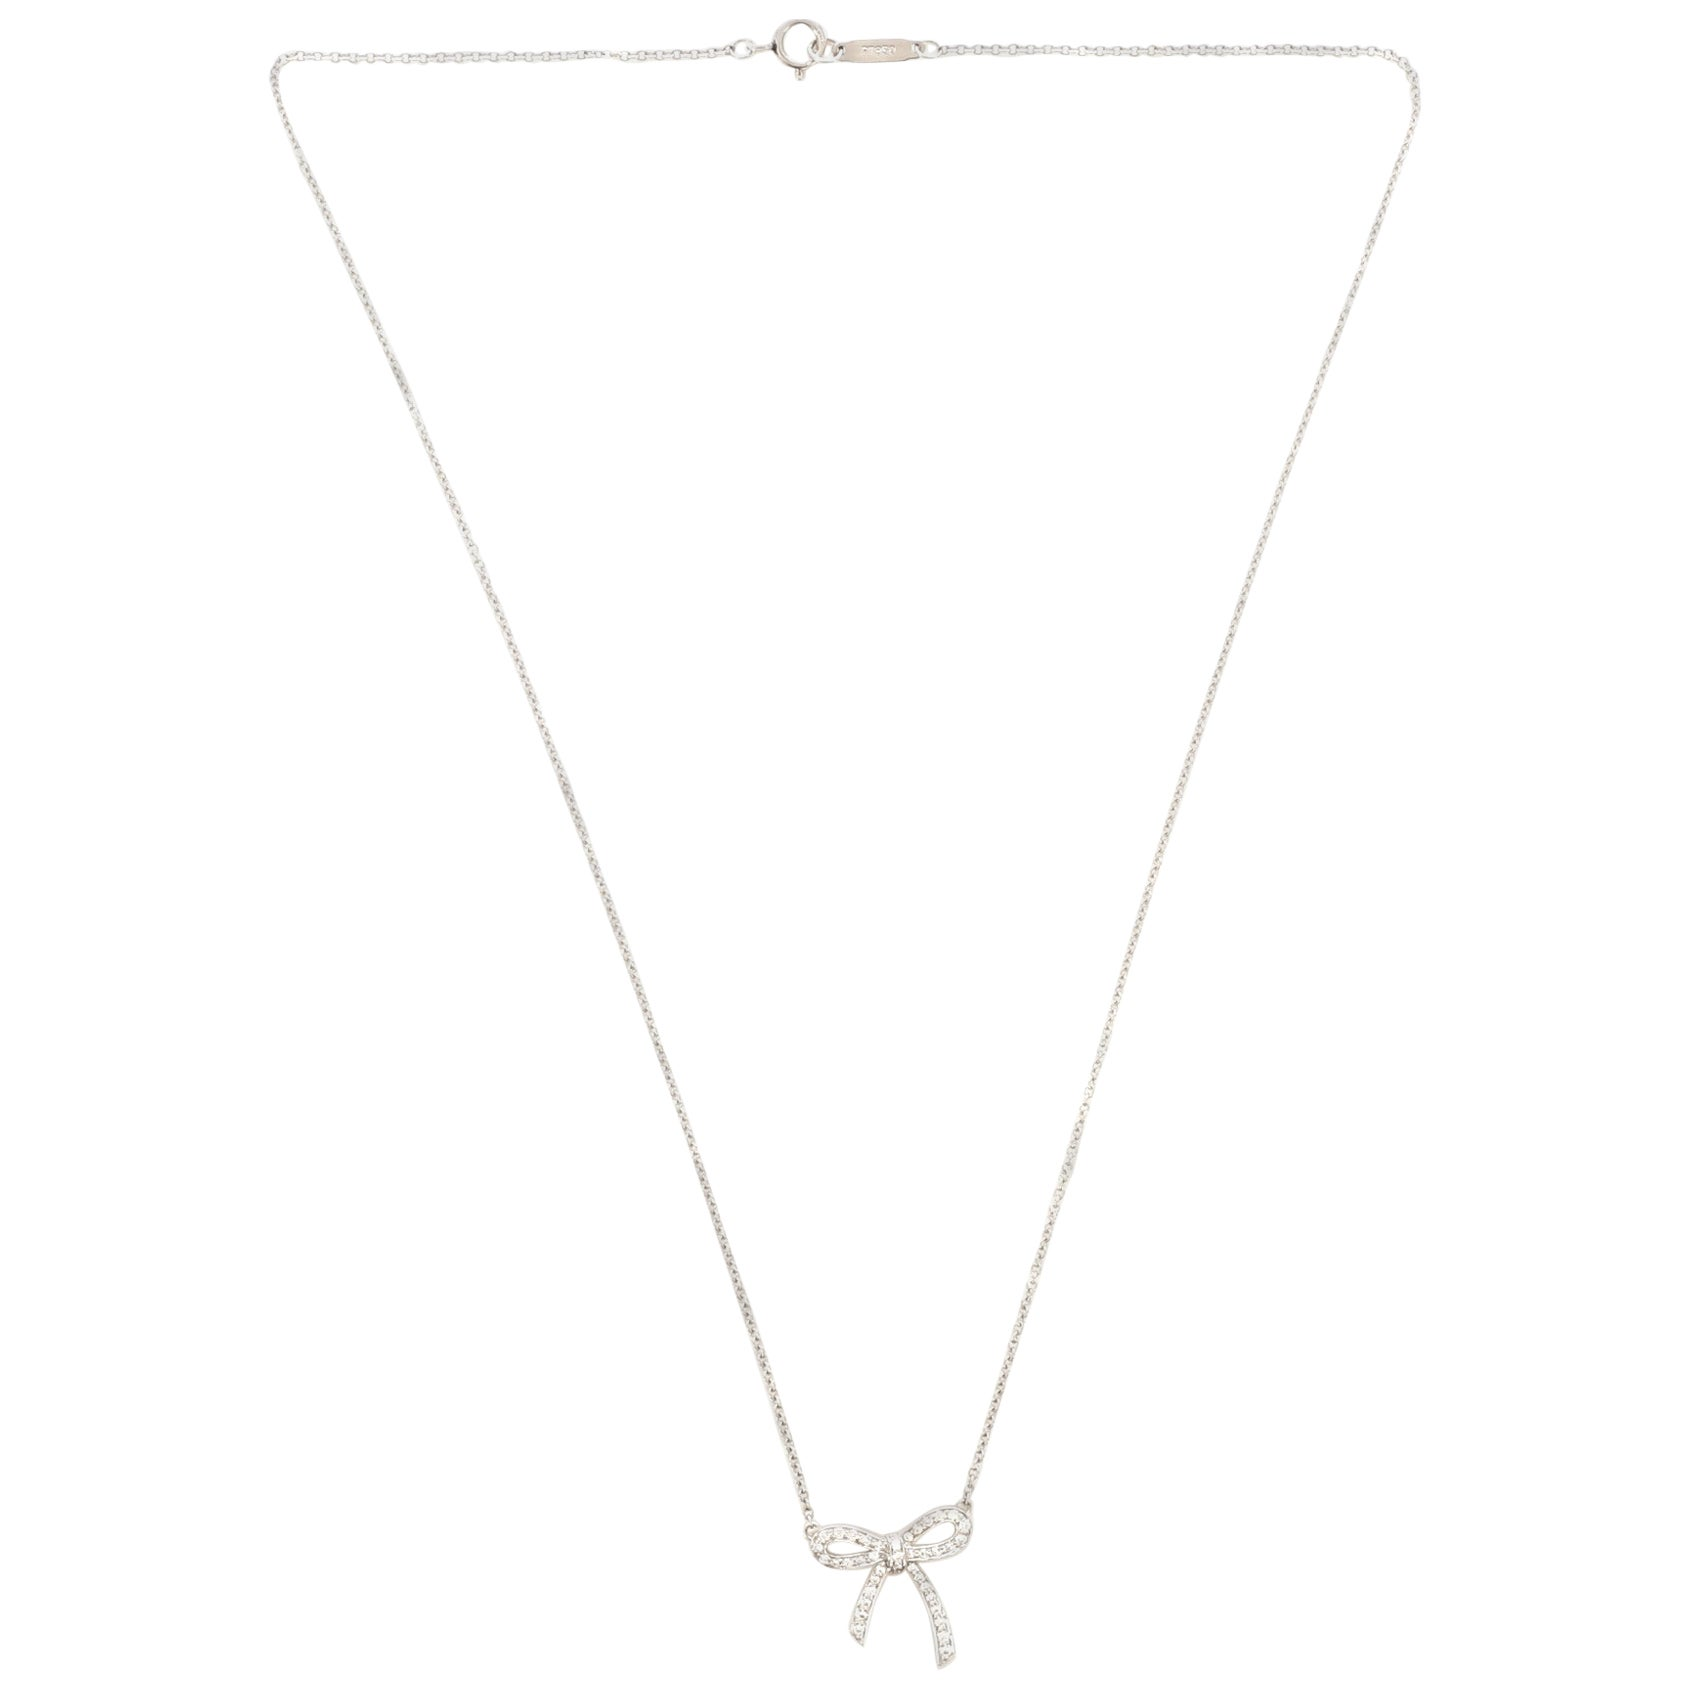 Tiffany & Co. Bow Pendant Necklace Platinum and Diamonds